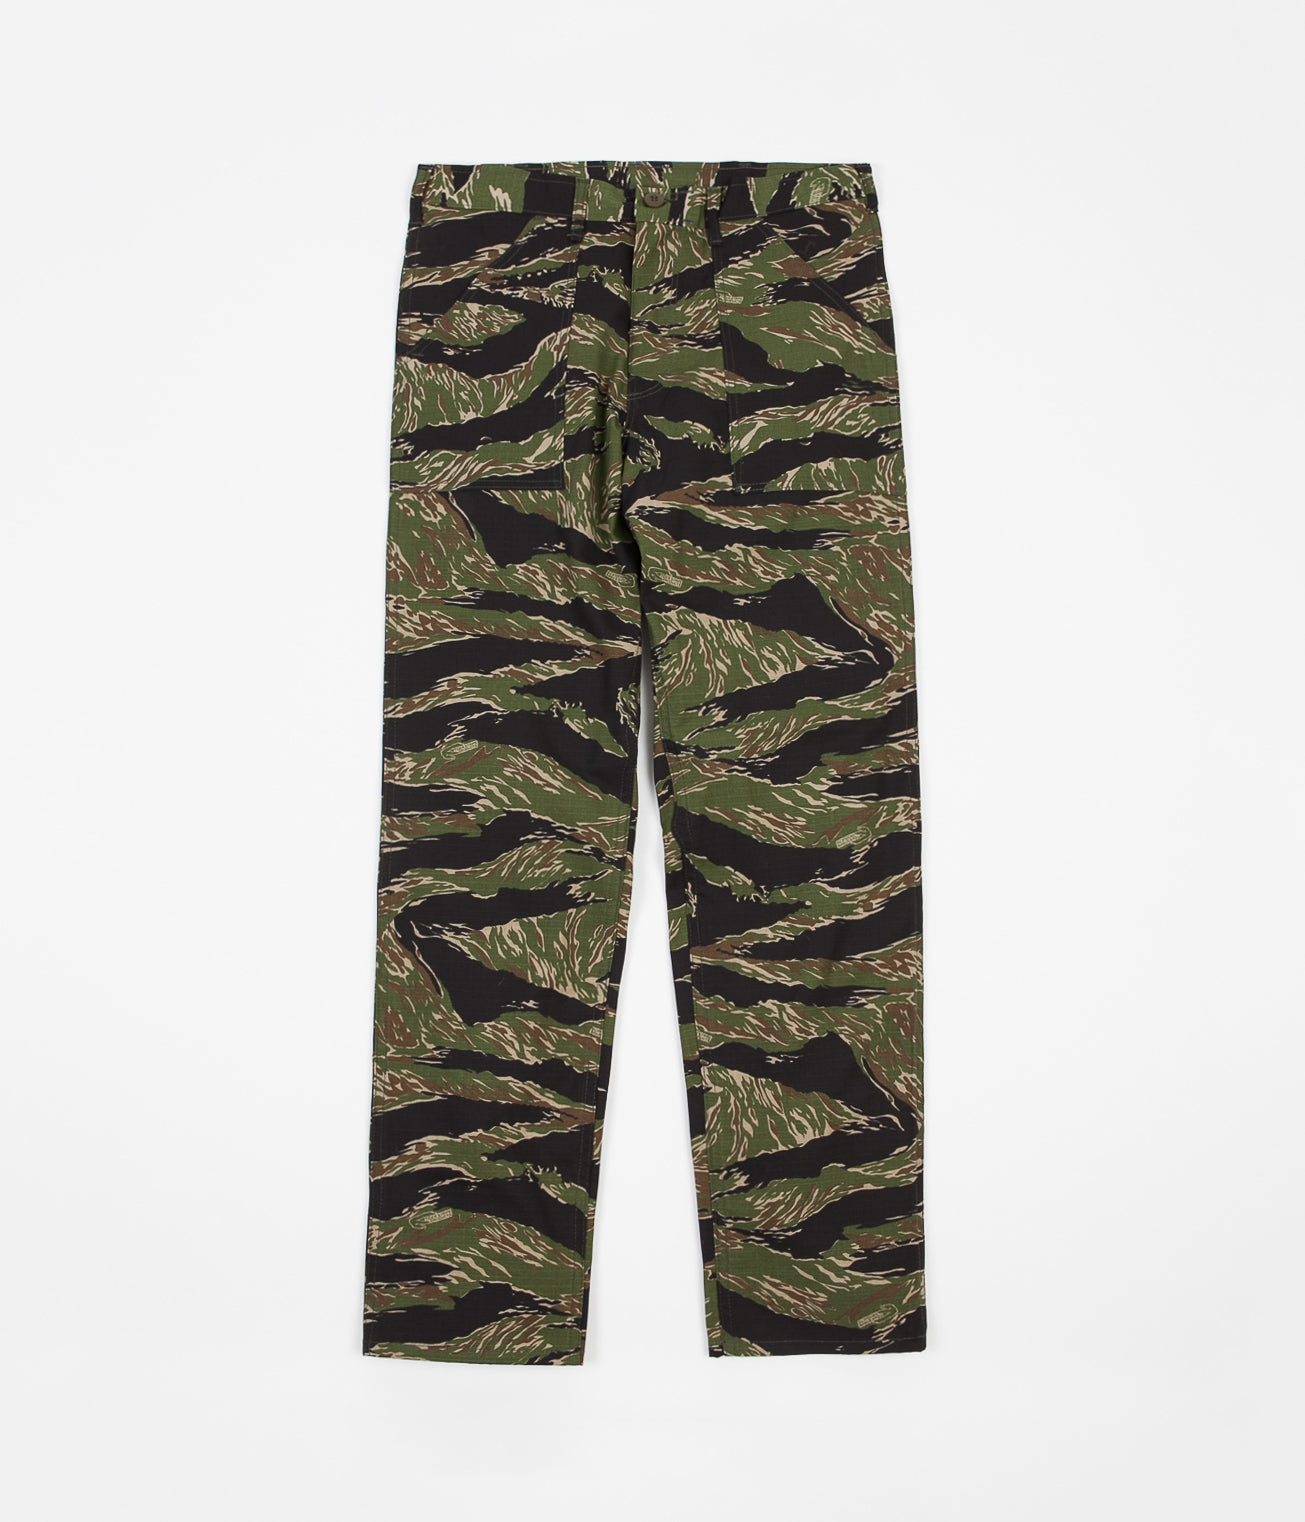 Stan Ray Taper Fit 4 Pocket Fatigue Trousers - Green Tigerstripe Ripstop